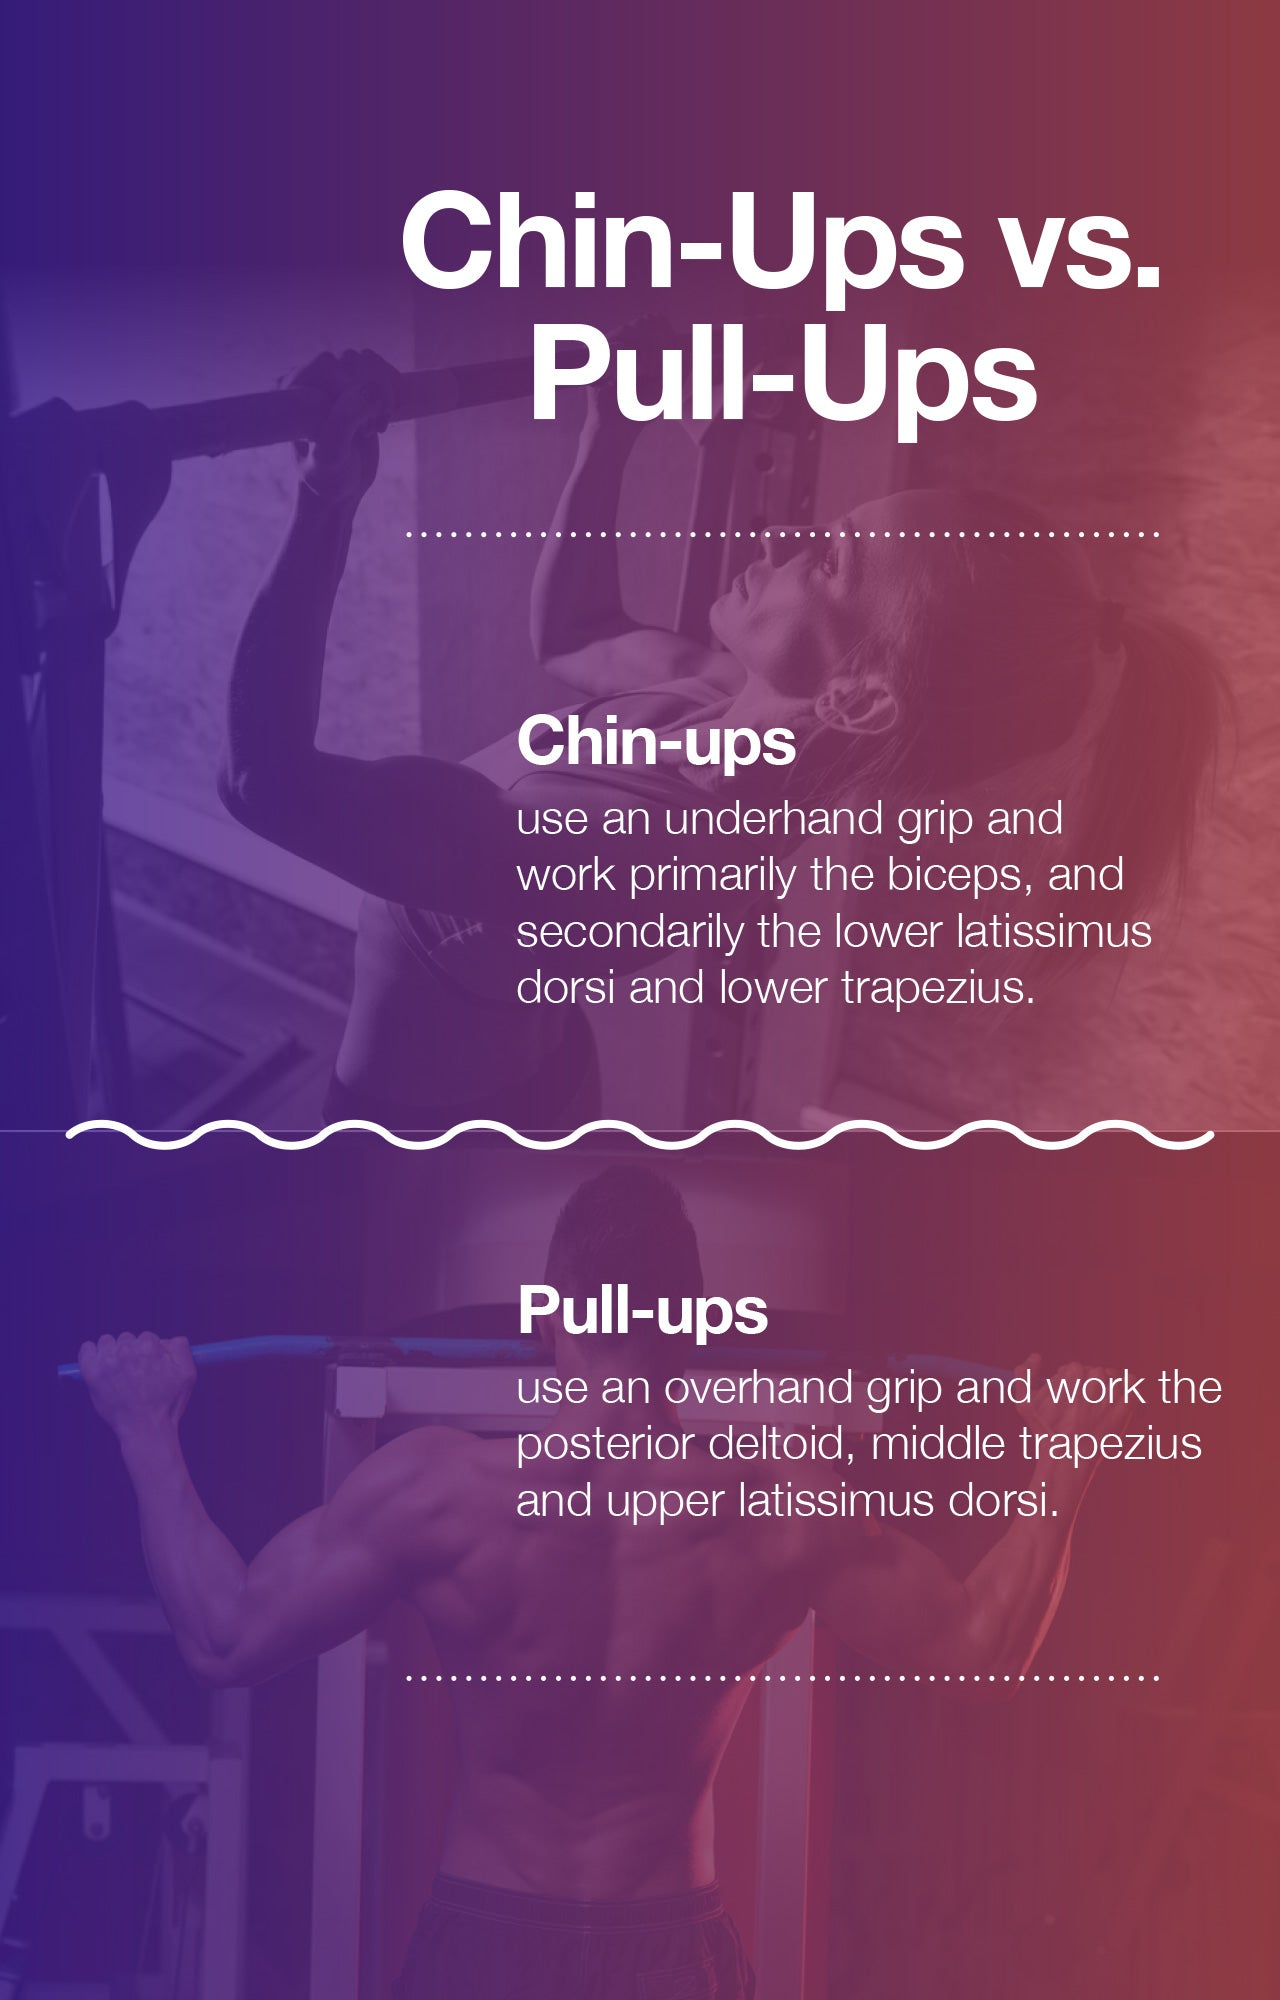 Difference between chin-ups and pull-ups